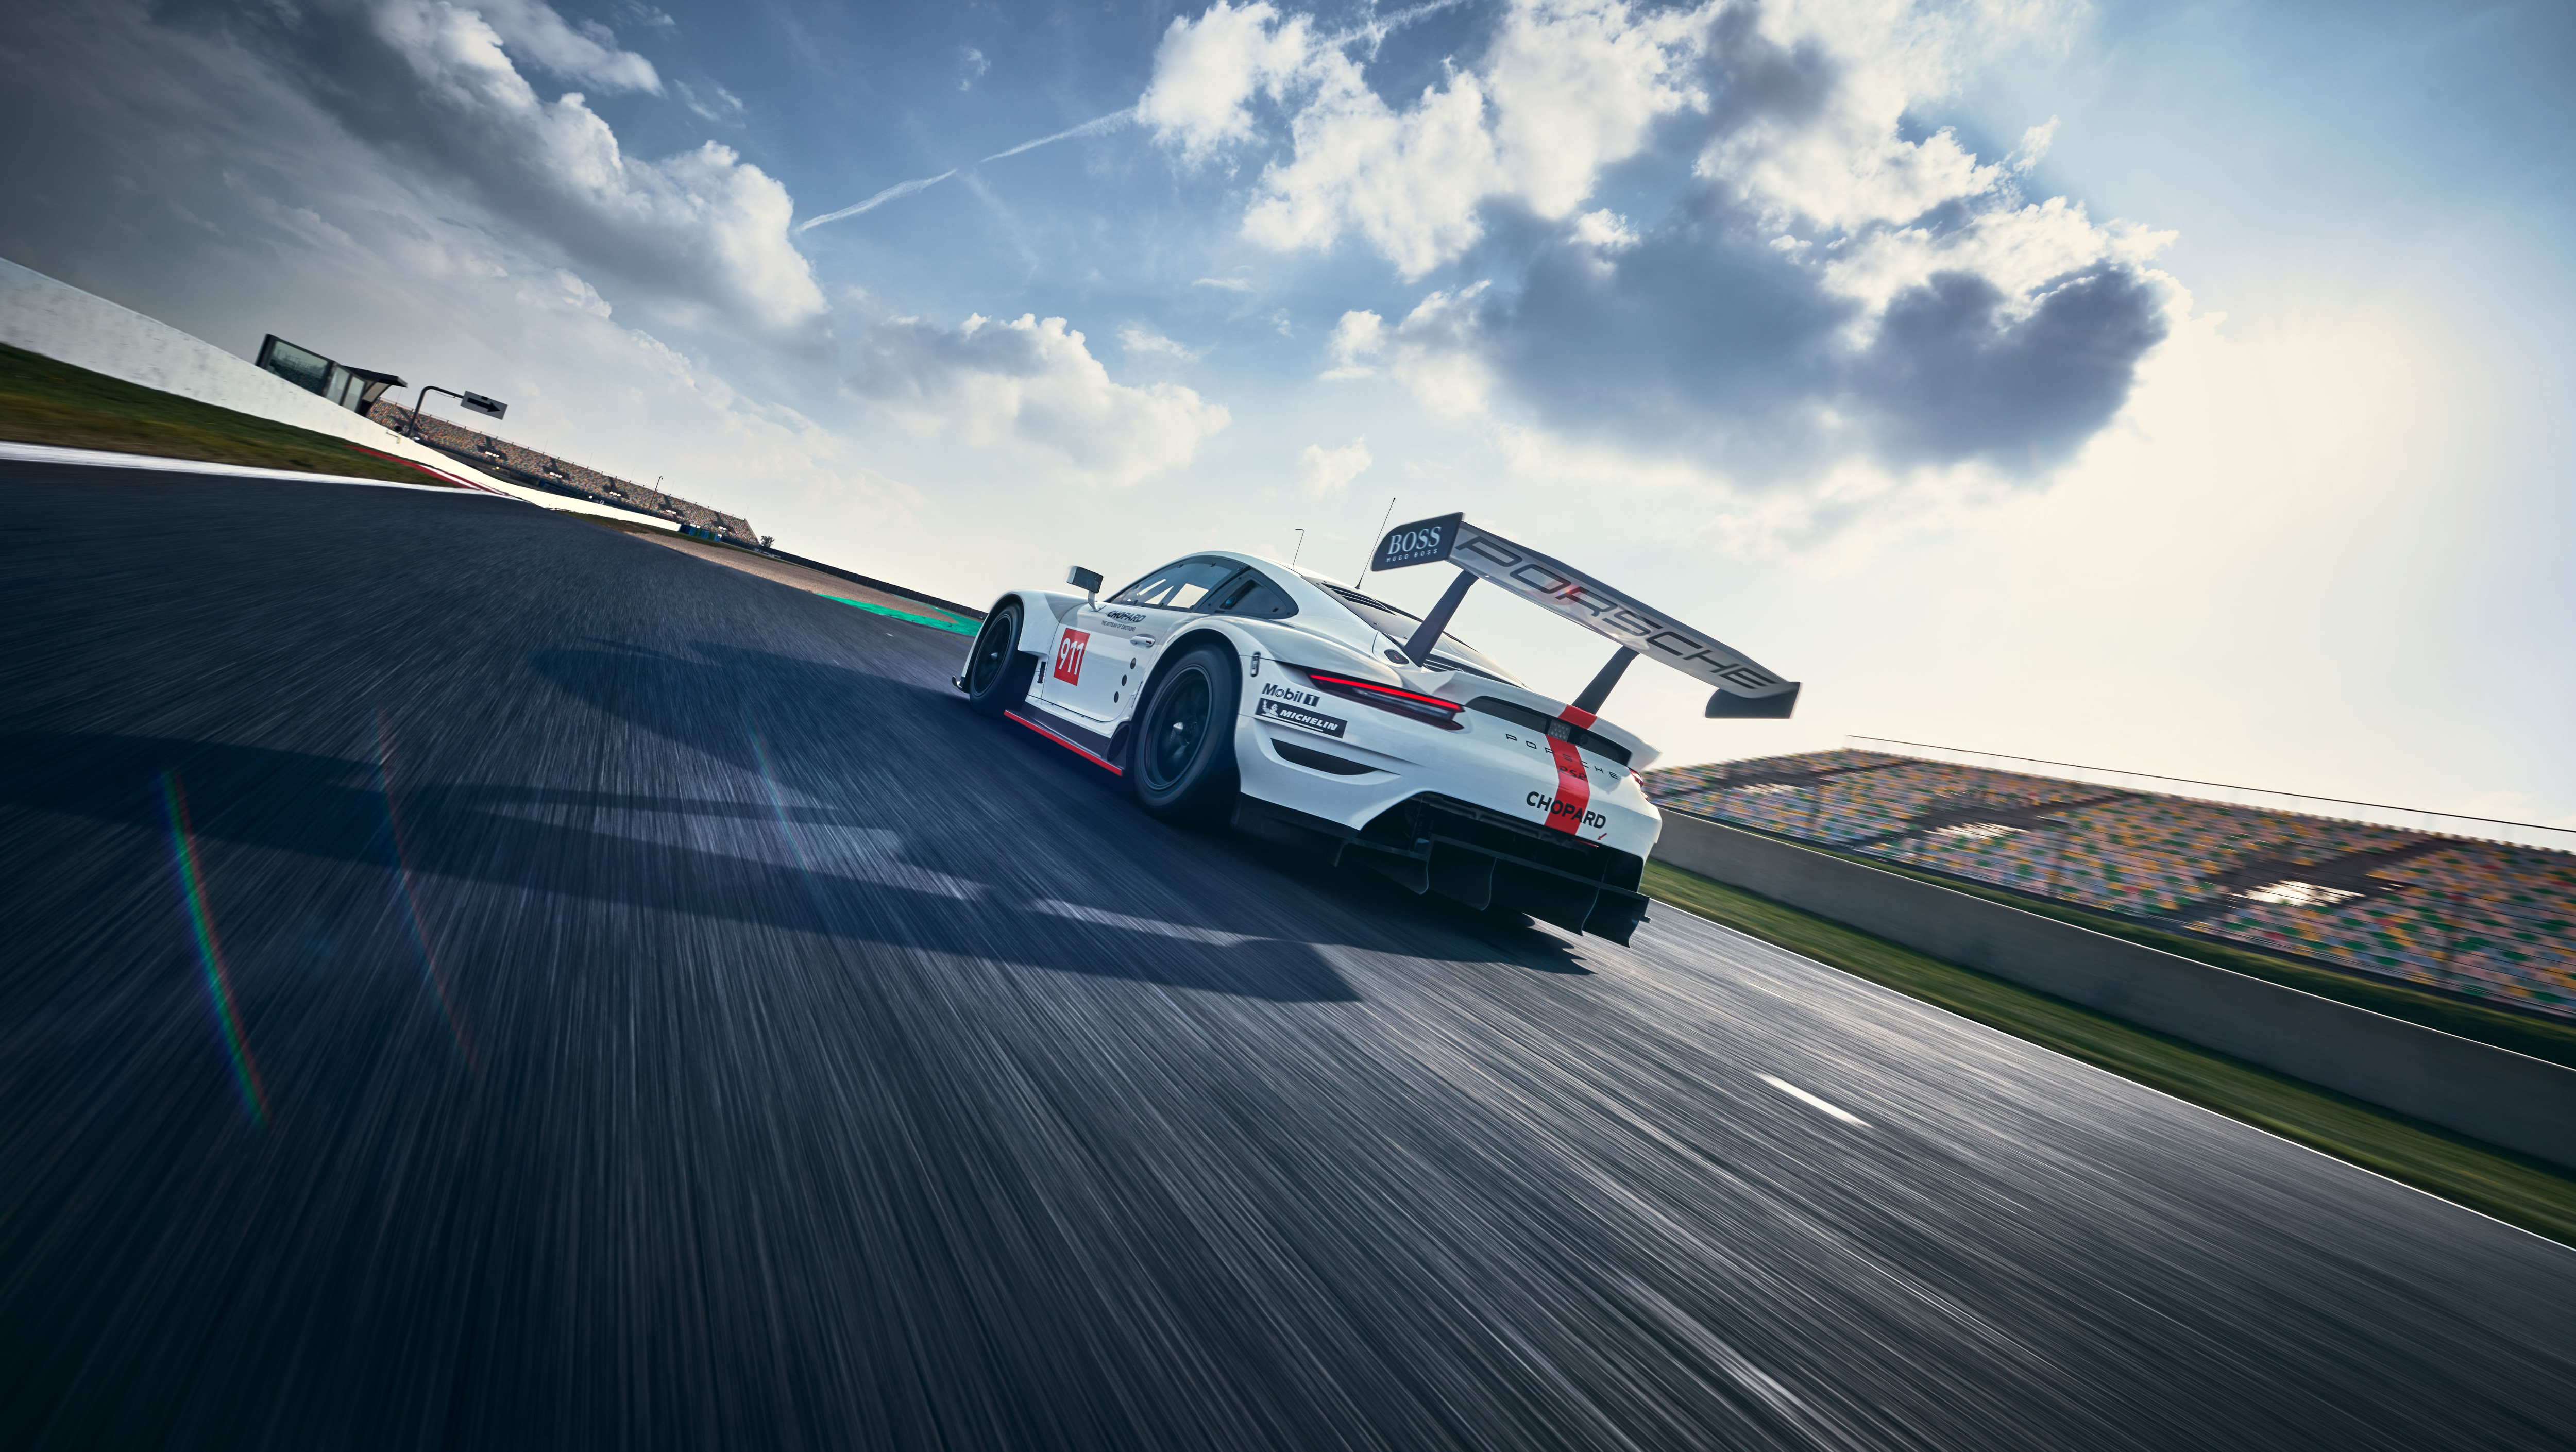 This is the new Porsche 911 RSR